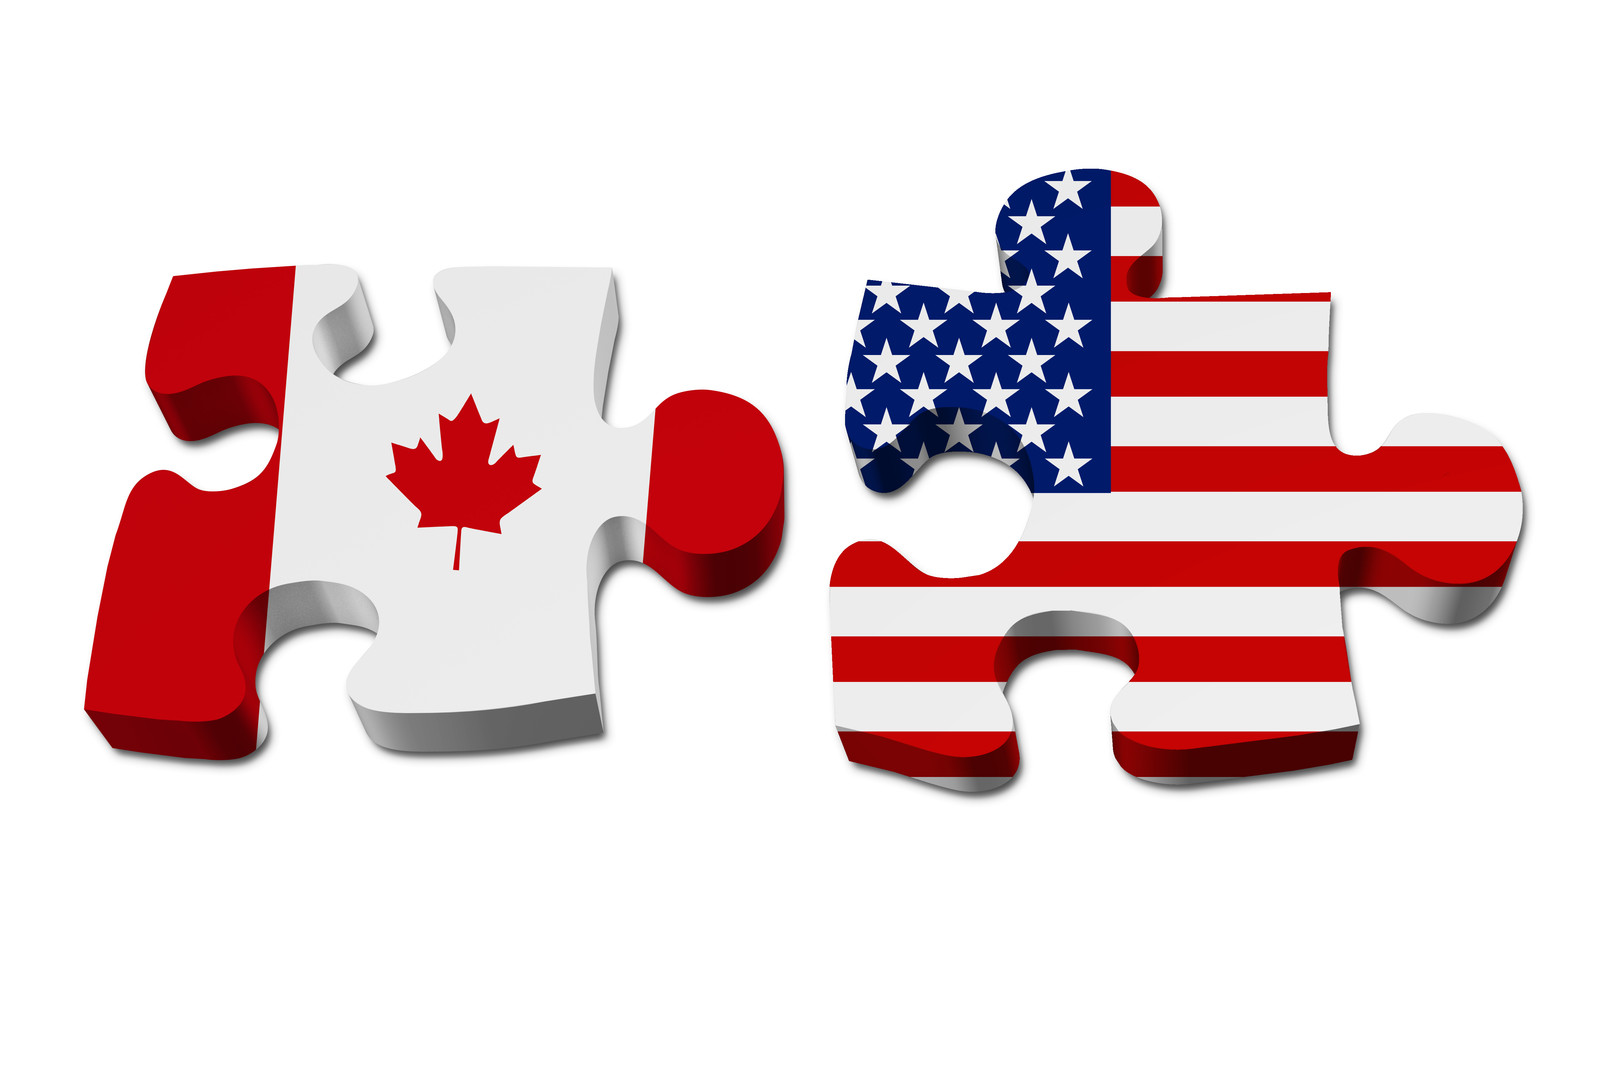 Canada and United states flag in puzzle piece shapes